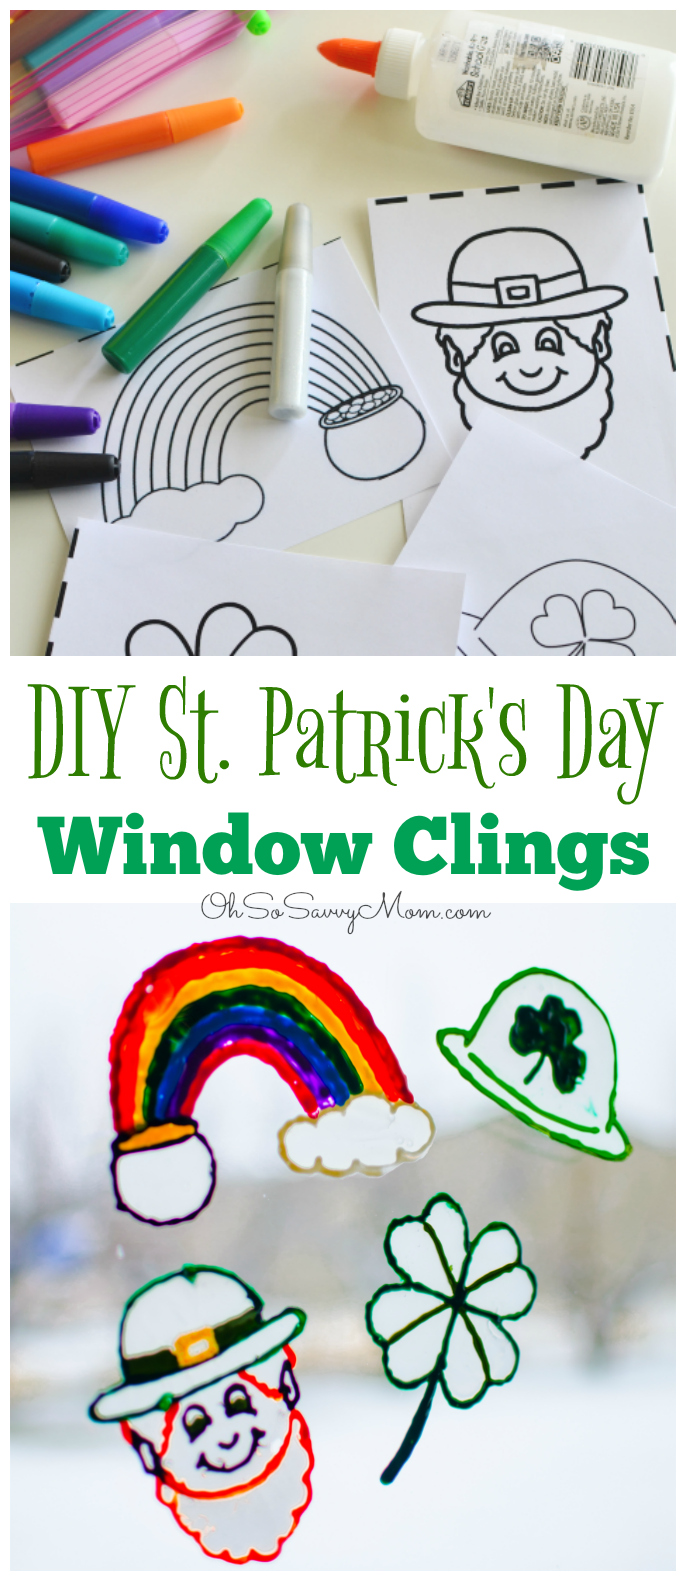 DIY St. Patrick's Day Window Clings Craft